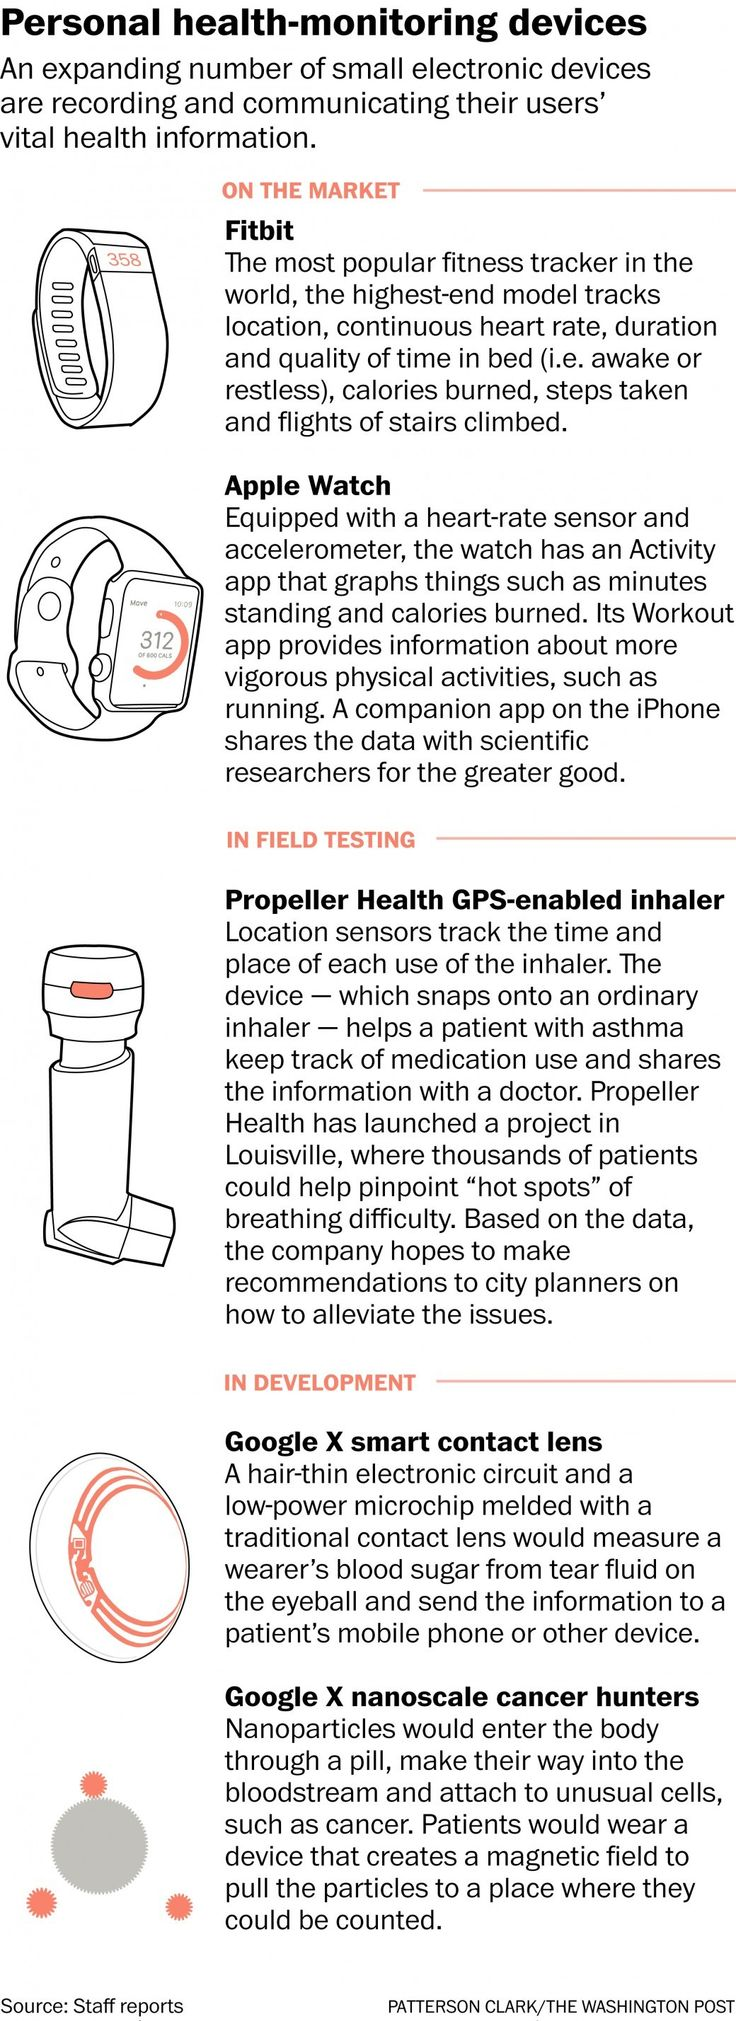 Wearable gadgets portend vast health, research and privacy consequences   The Washington Post